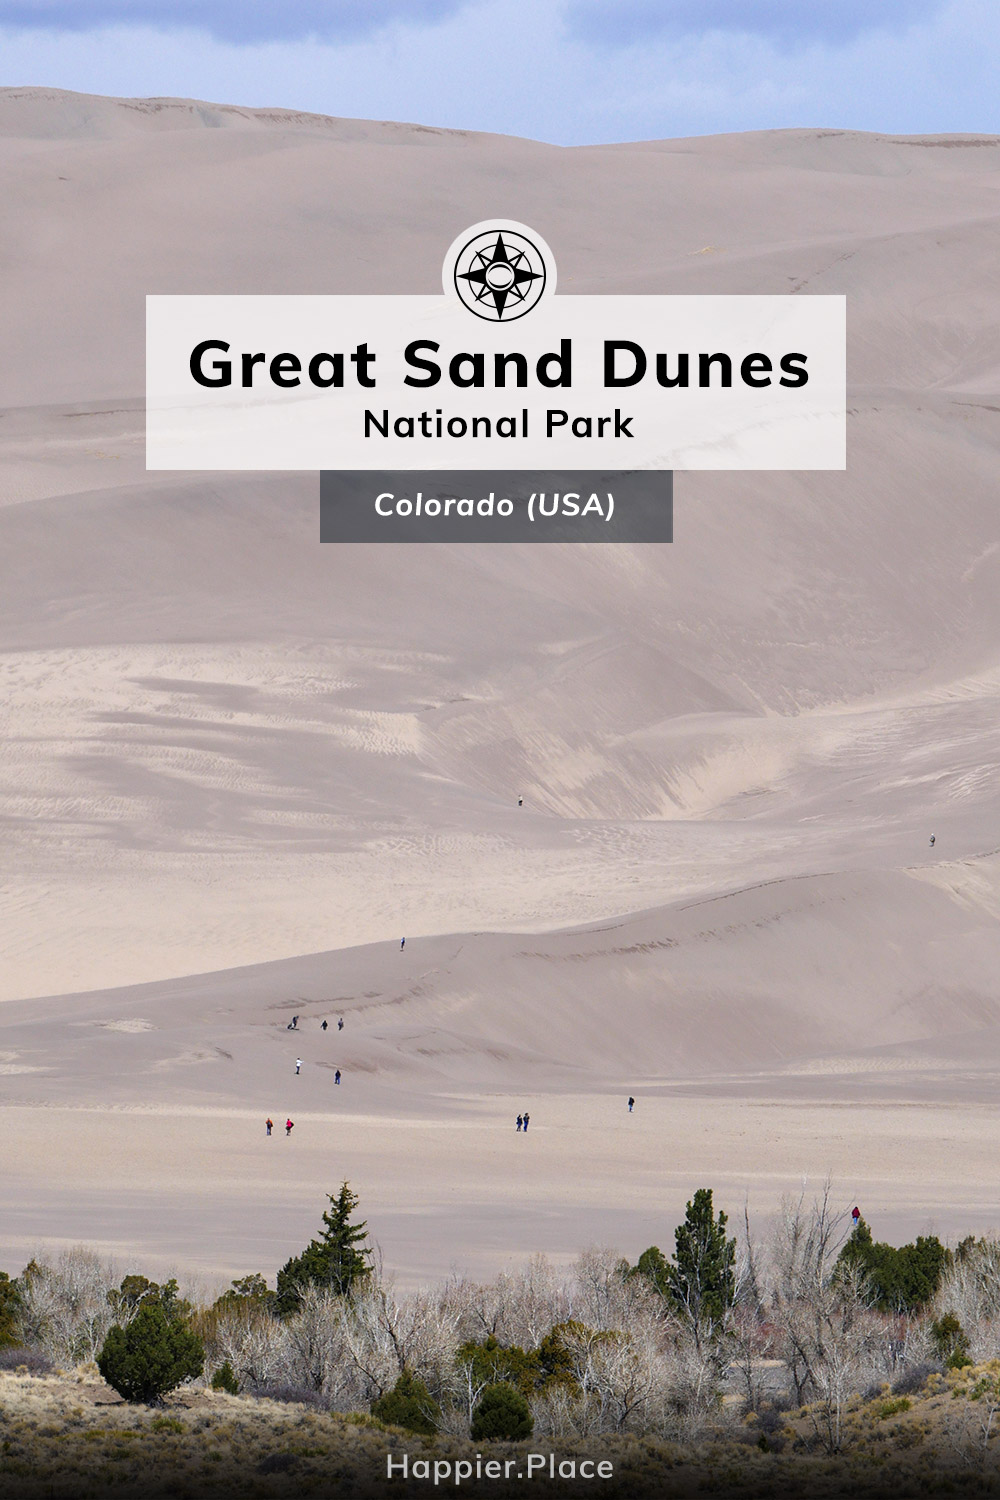 Great Sand Dunes National Park is one of those places you have to see to believe! The scale, the contrasting landscape, the people sand boarding down the tallest dunes in North America! Read all about it and see more views on our outdoor blog.  #HappierPlace #Colorado #NationalPark #findyourpark #travelguide via @HappierPlace